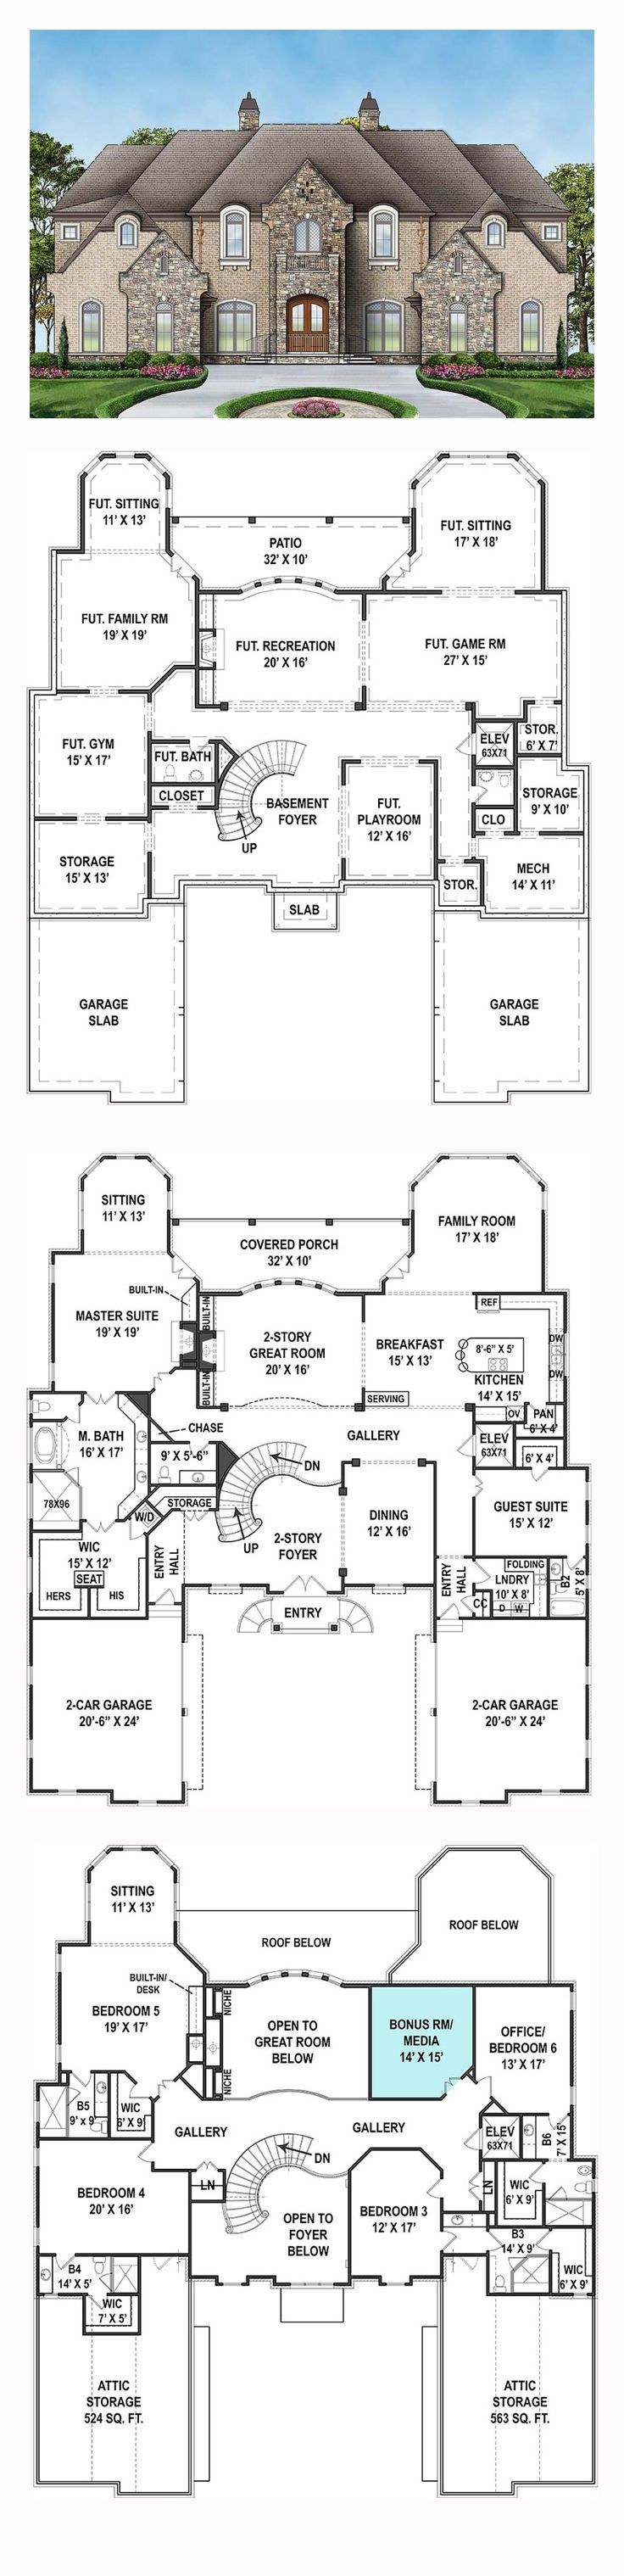 Photo of New house plan 72171 | Total living space: 6072 sqm, 6 bedrooms and 6.5 bathrooms …